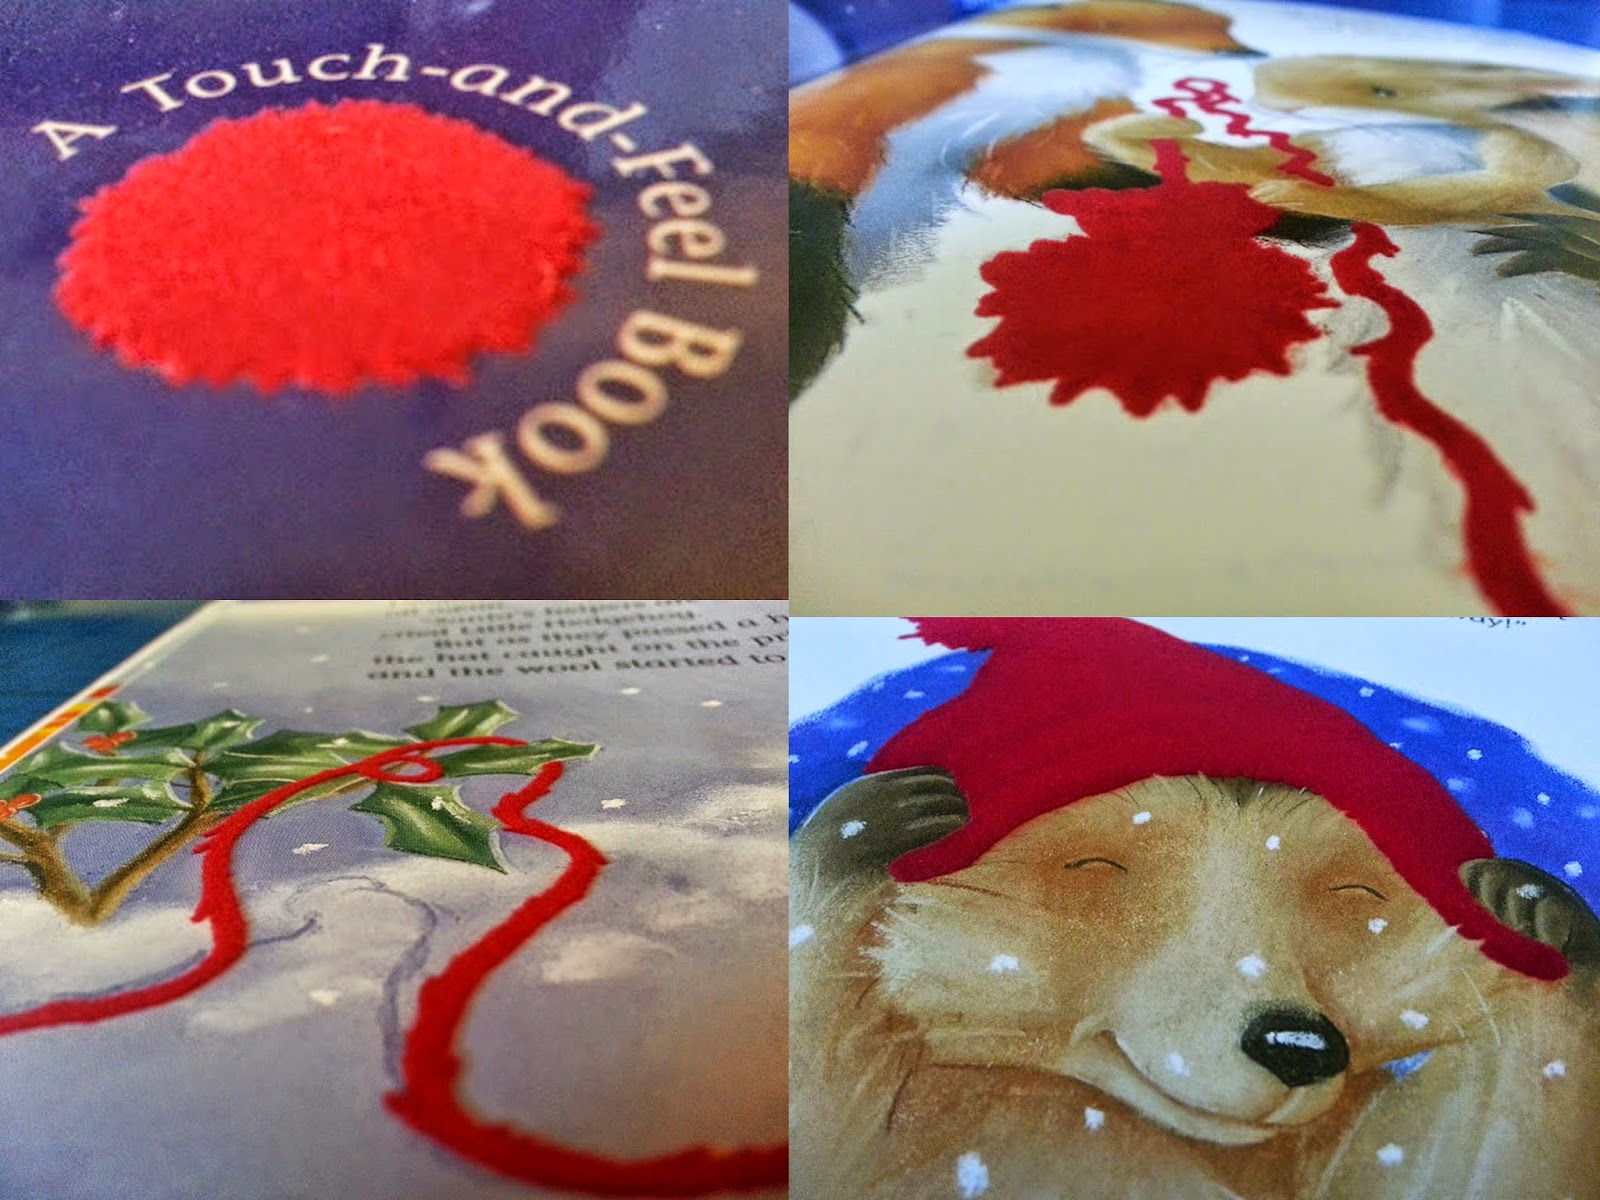 Little Tiger Press Tina Macnaughton touch and feel books red flocked printing